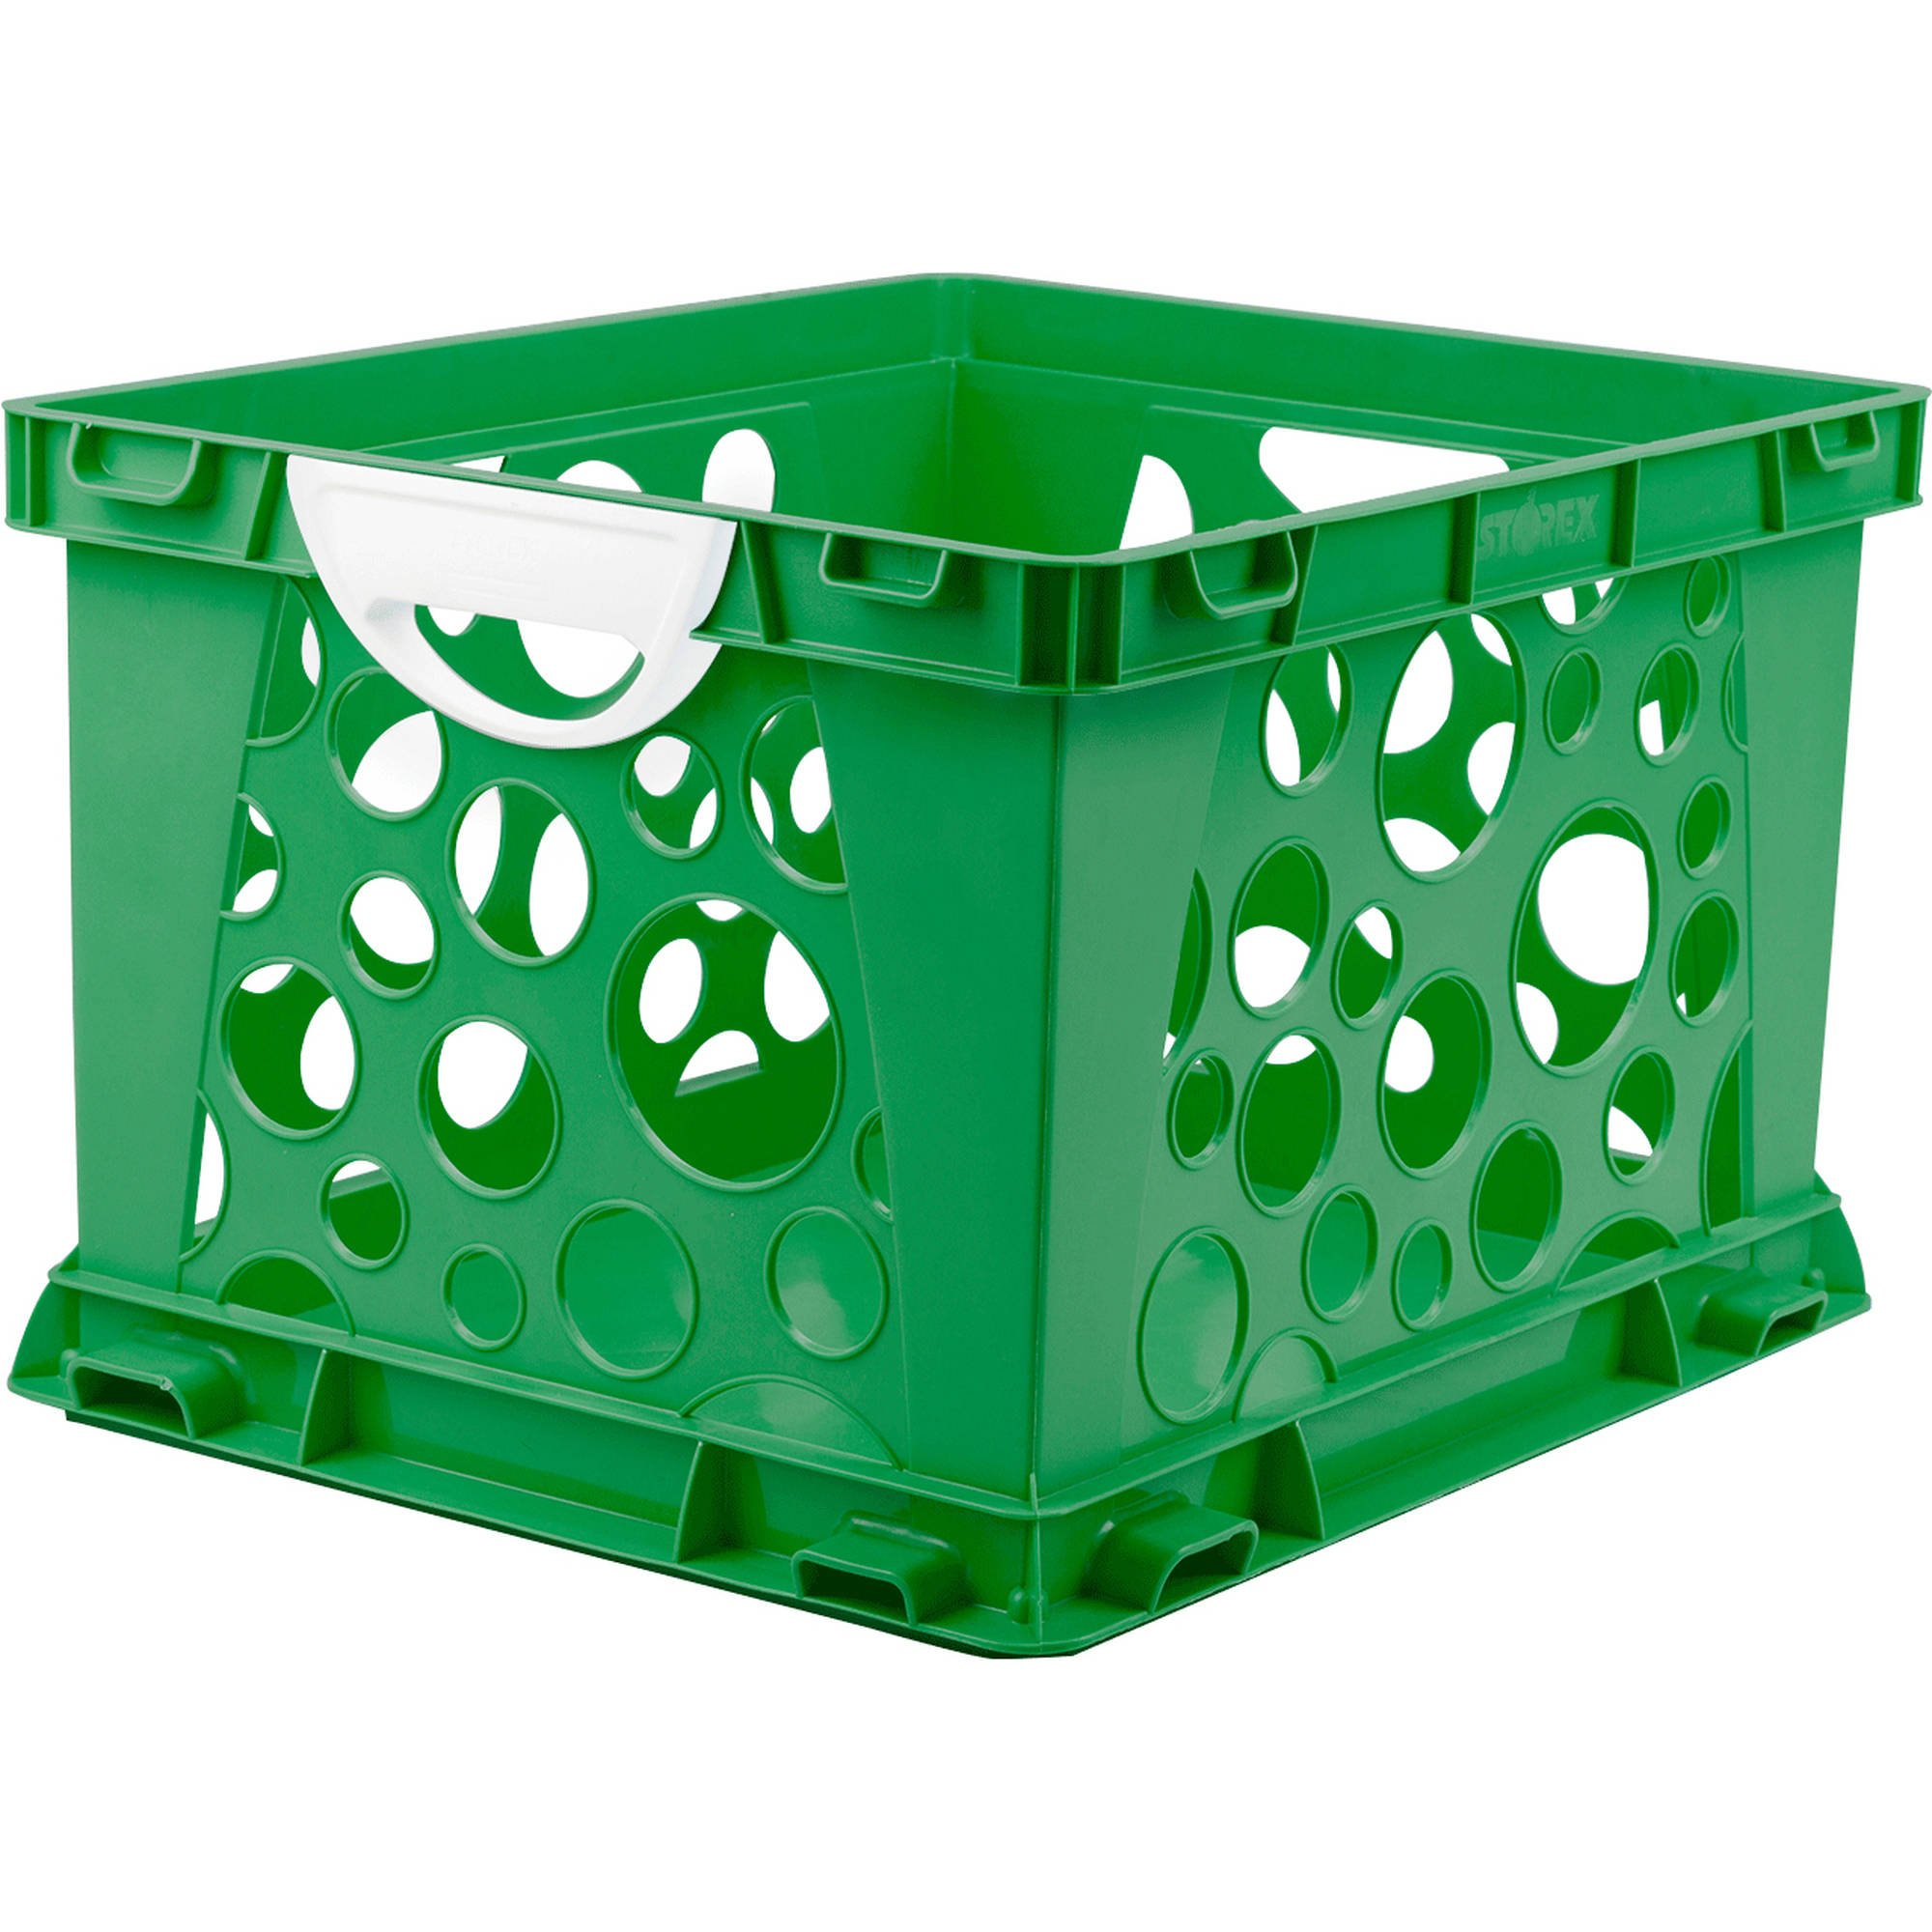 Indoor Large File Crate Storage with Handles, in Green ( 3 PACK )